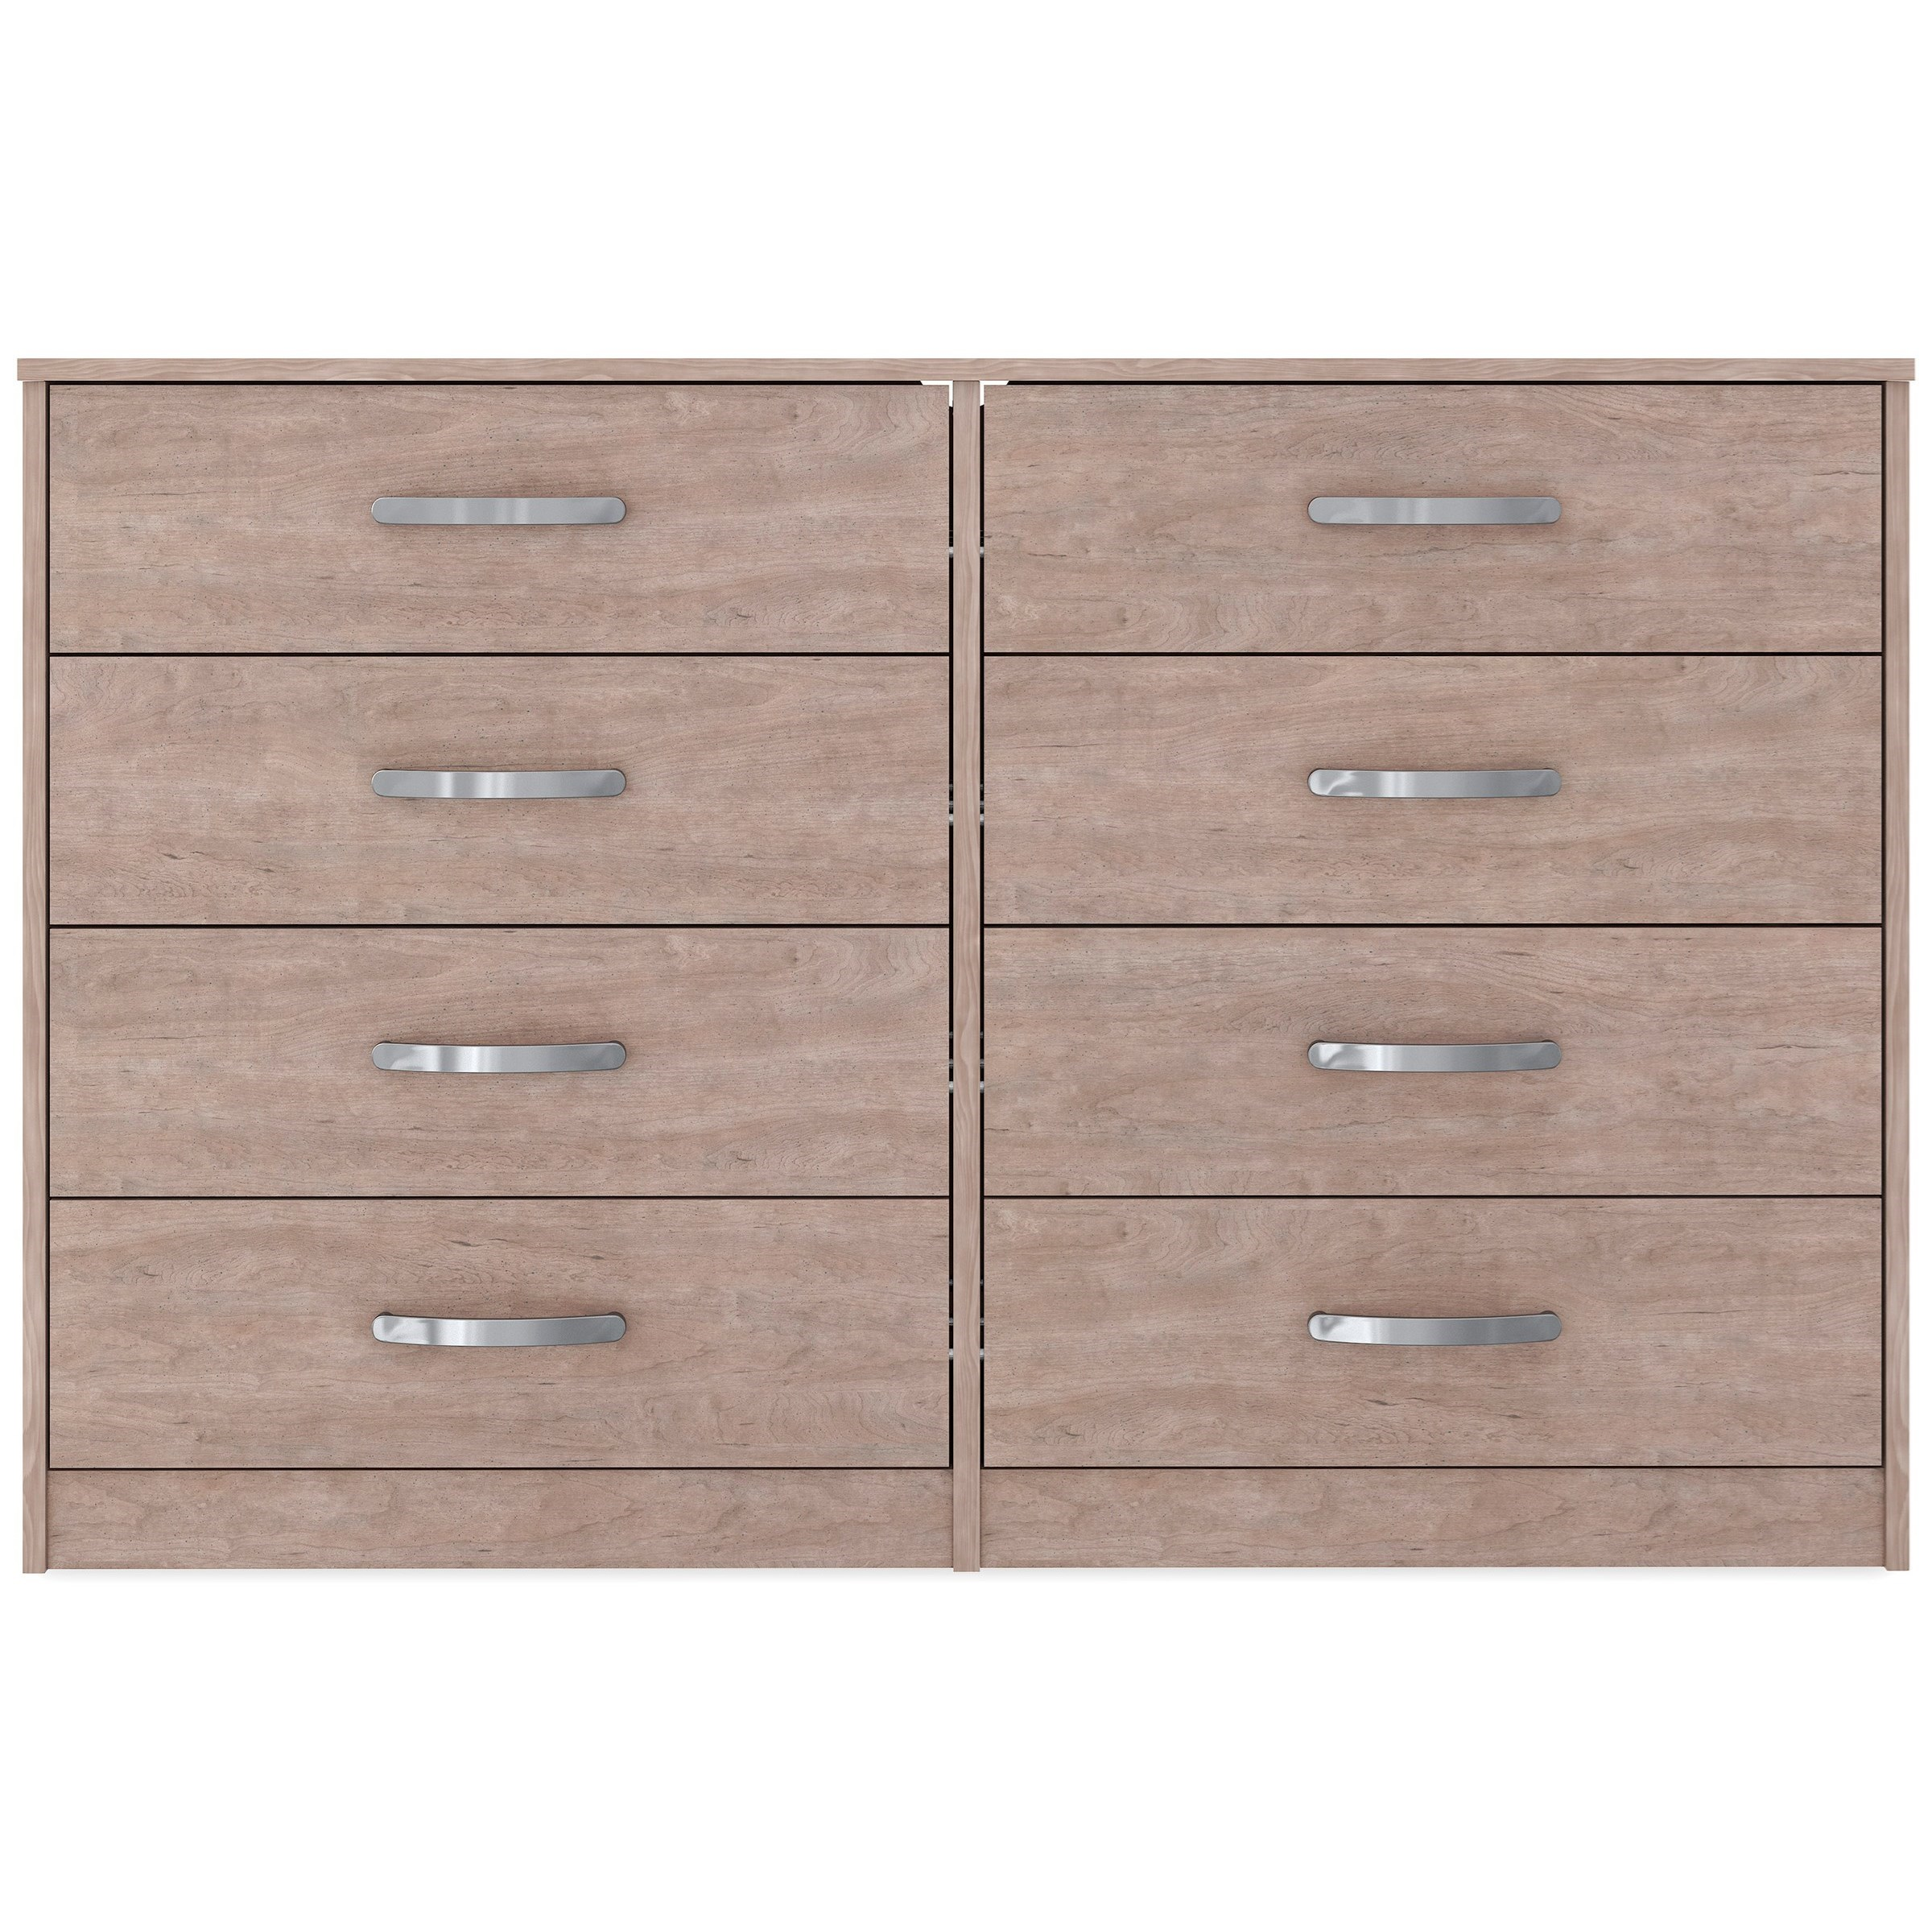 Flannia Dresser by Signature Design by Ashley at Northeast Factory Direct